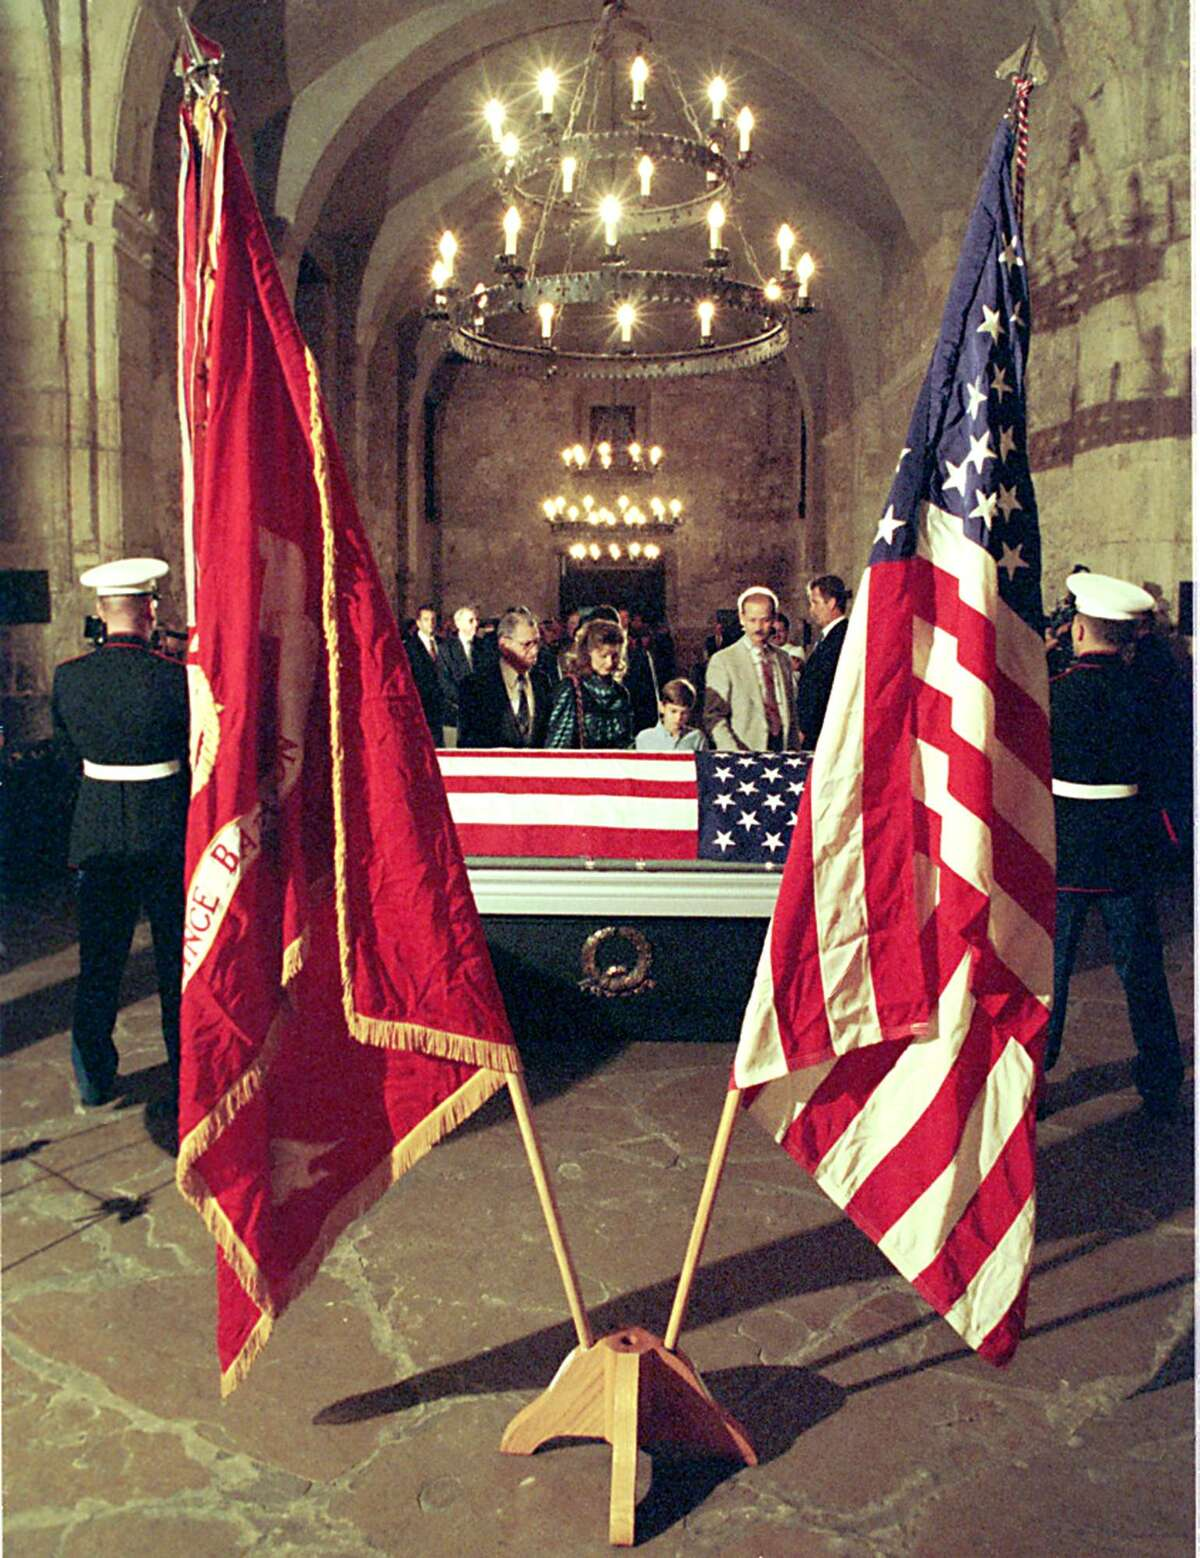 Family members file past the flag-draped caket containing the body of Marine Staff Sgt. and World War II Medal of Honor recipient William J Bordelson as it lay in state in the Alamo chapel.